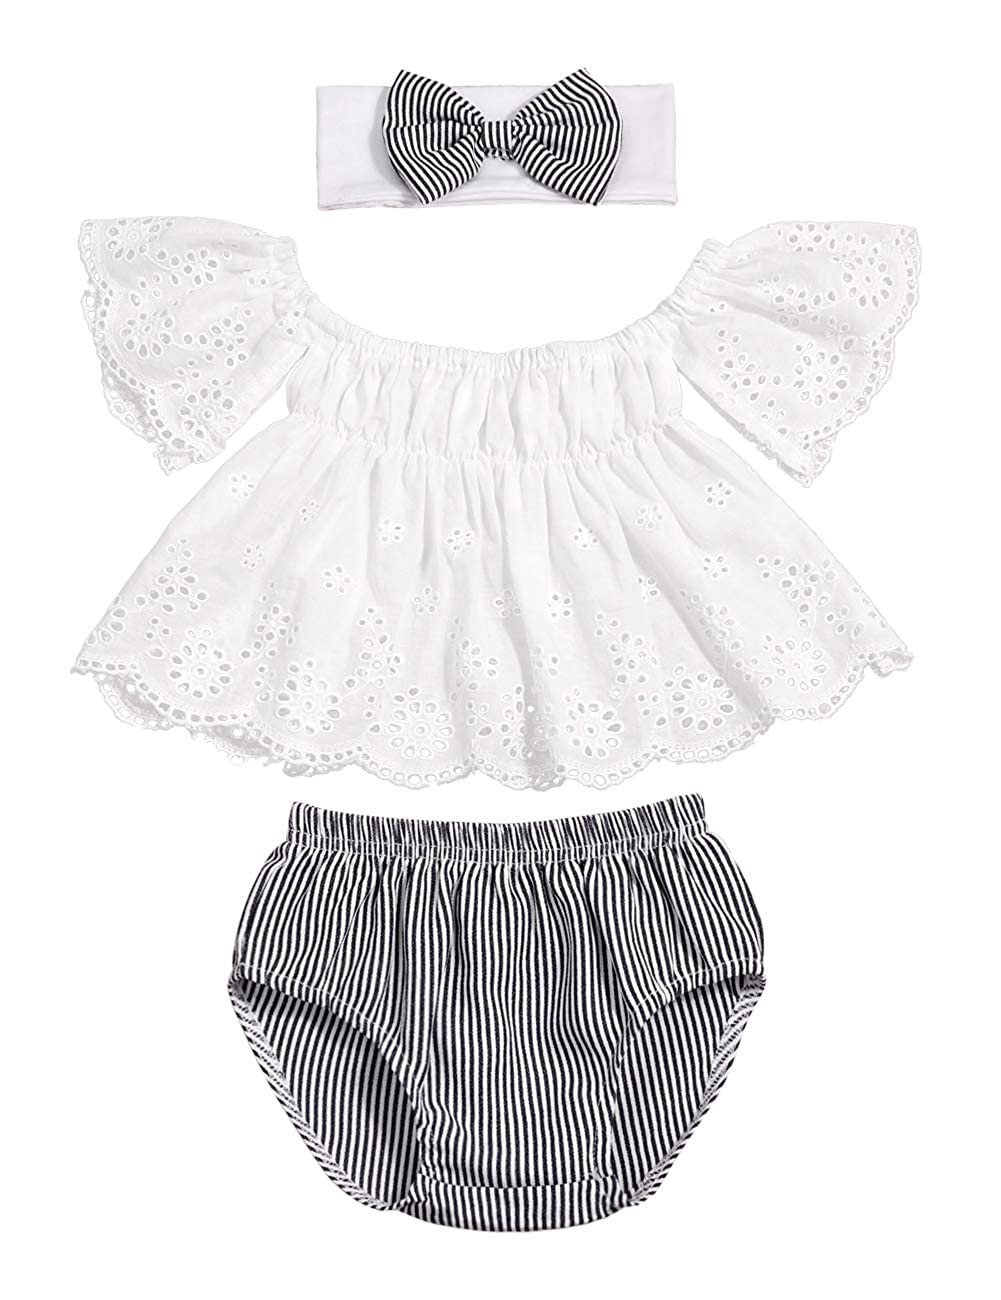 3bc1d429c Amazon.com  Toddler Baby Girls Clothes Lace Off Shoulder Short Sleeve  Tops+Stripe Shorts +Bow Headband Summer Outfits Set ...  Clothing